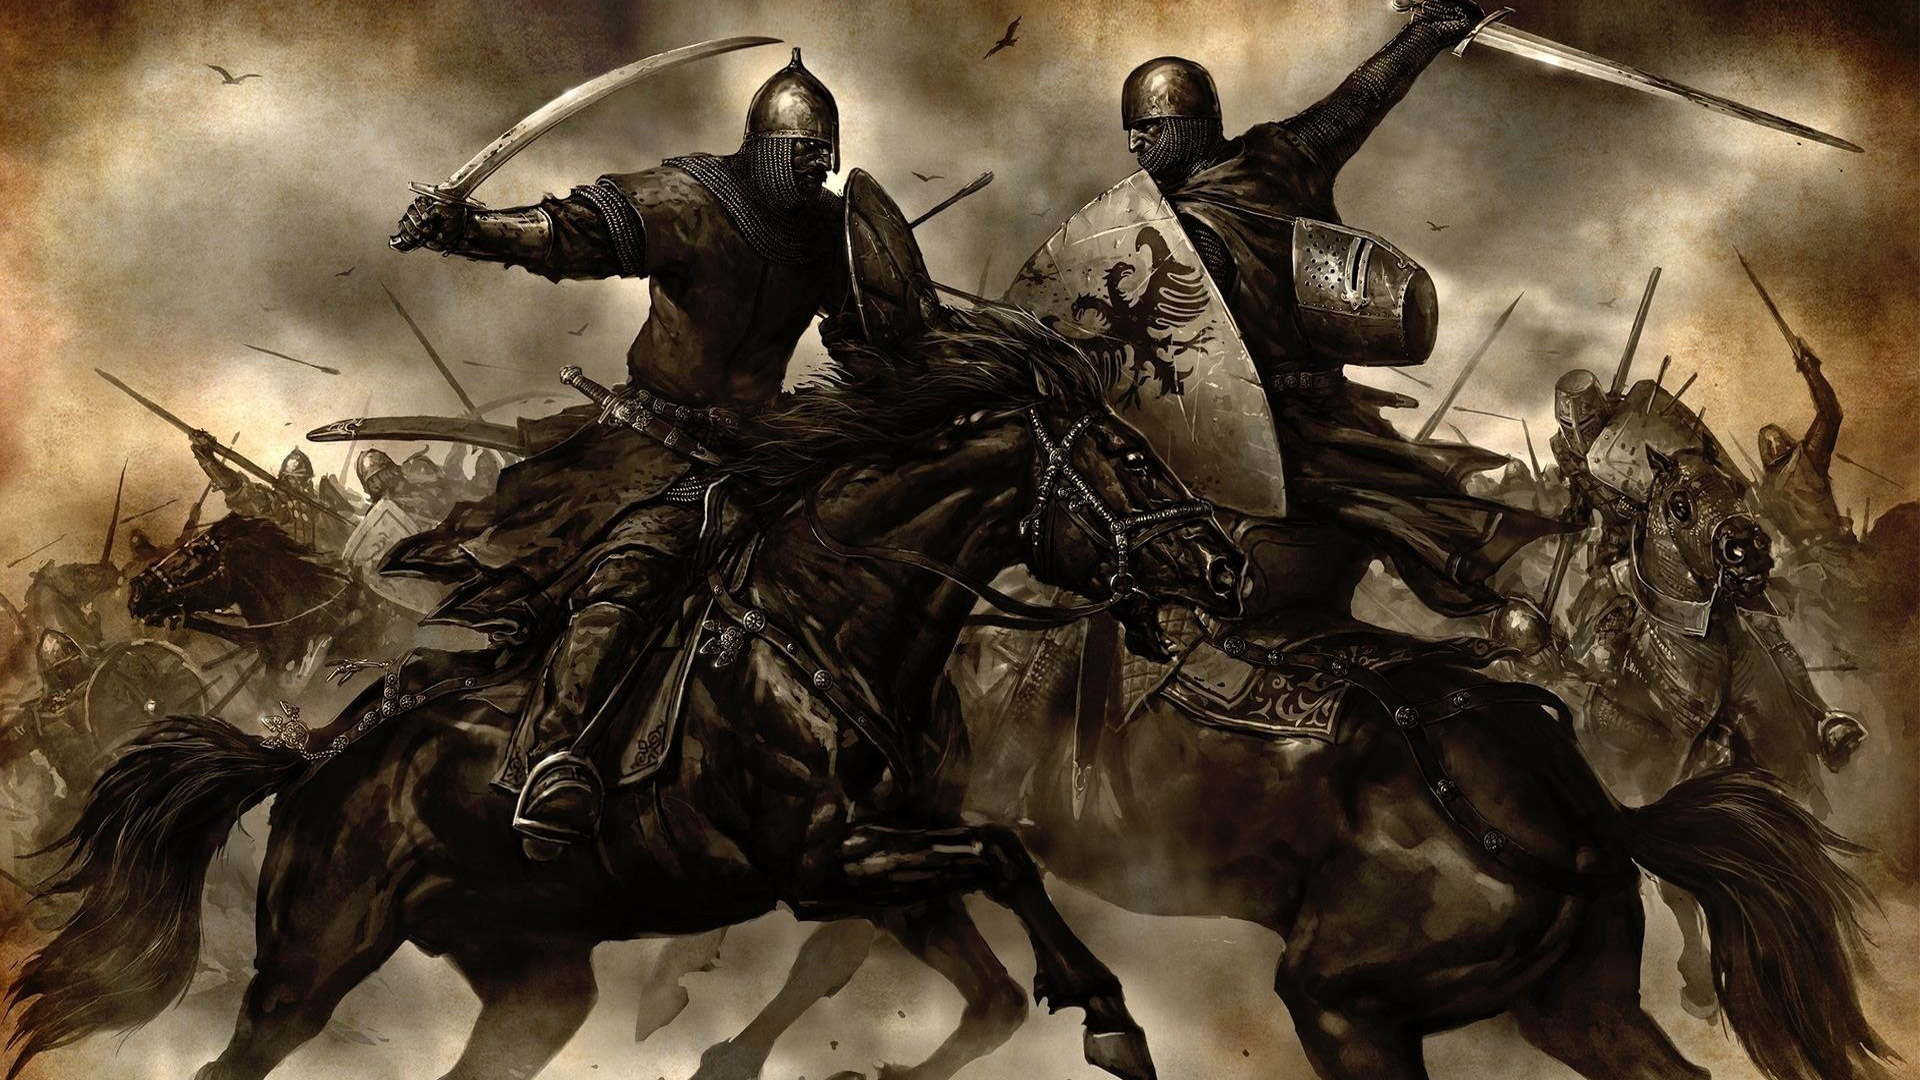 Free Mount & Blade Wallpaper in 1920x1080